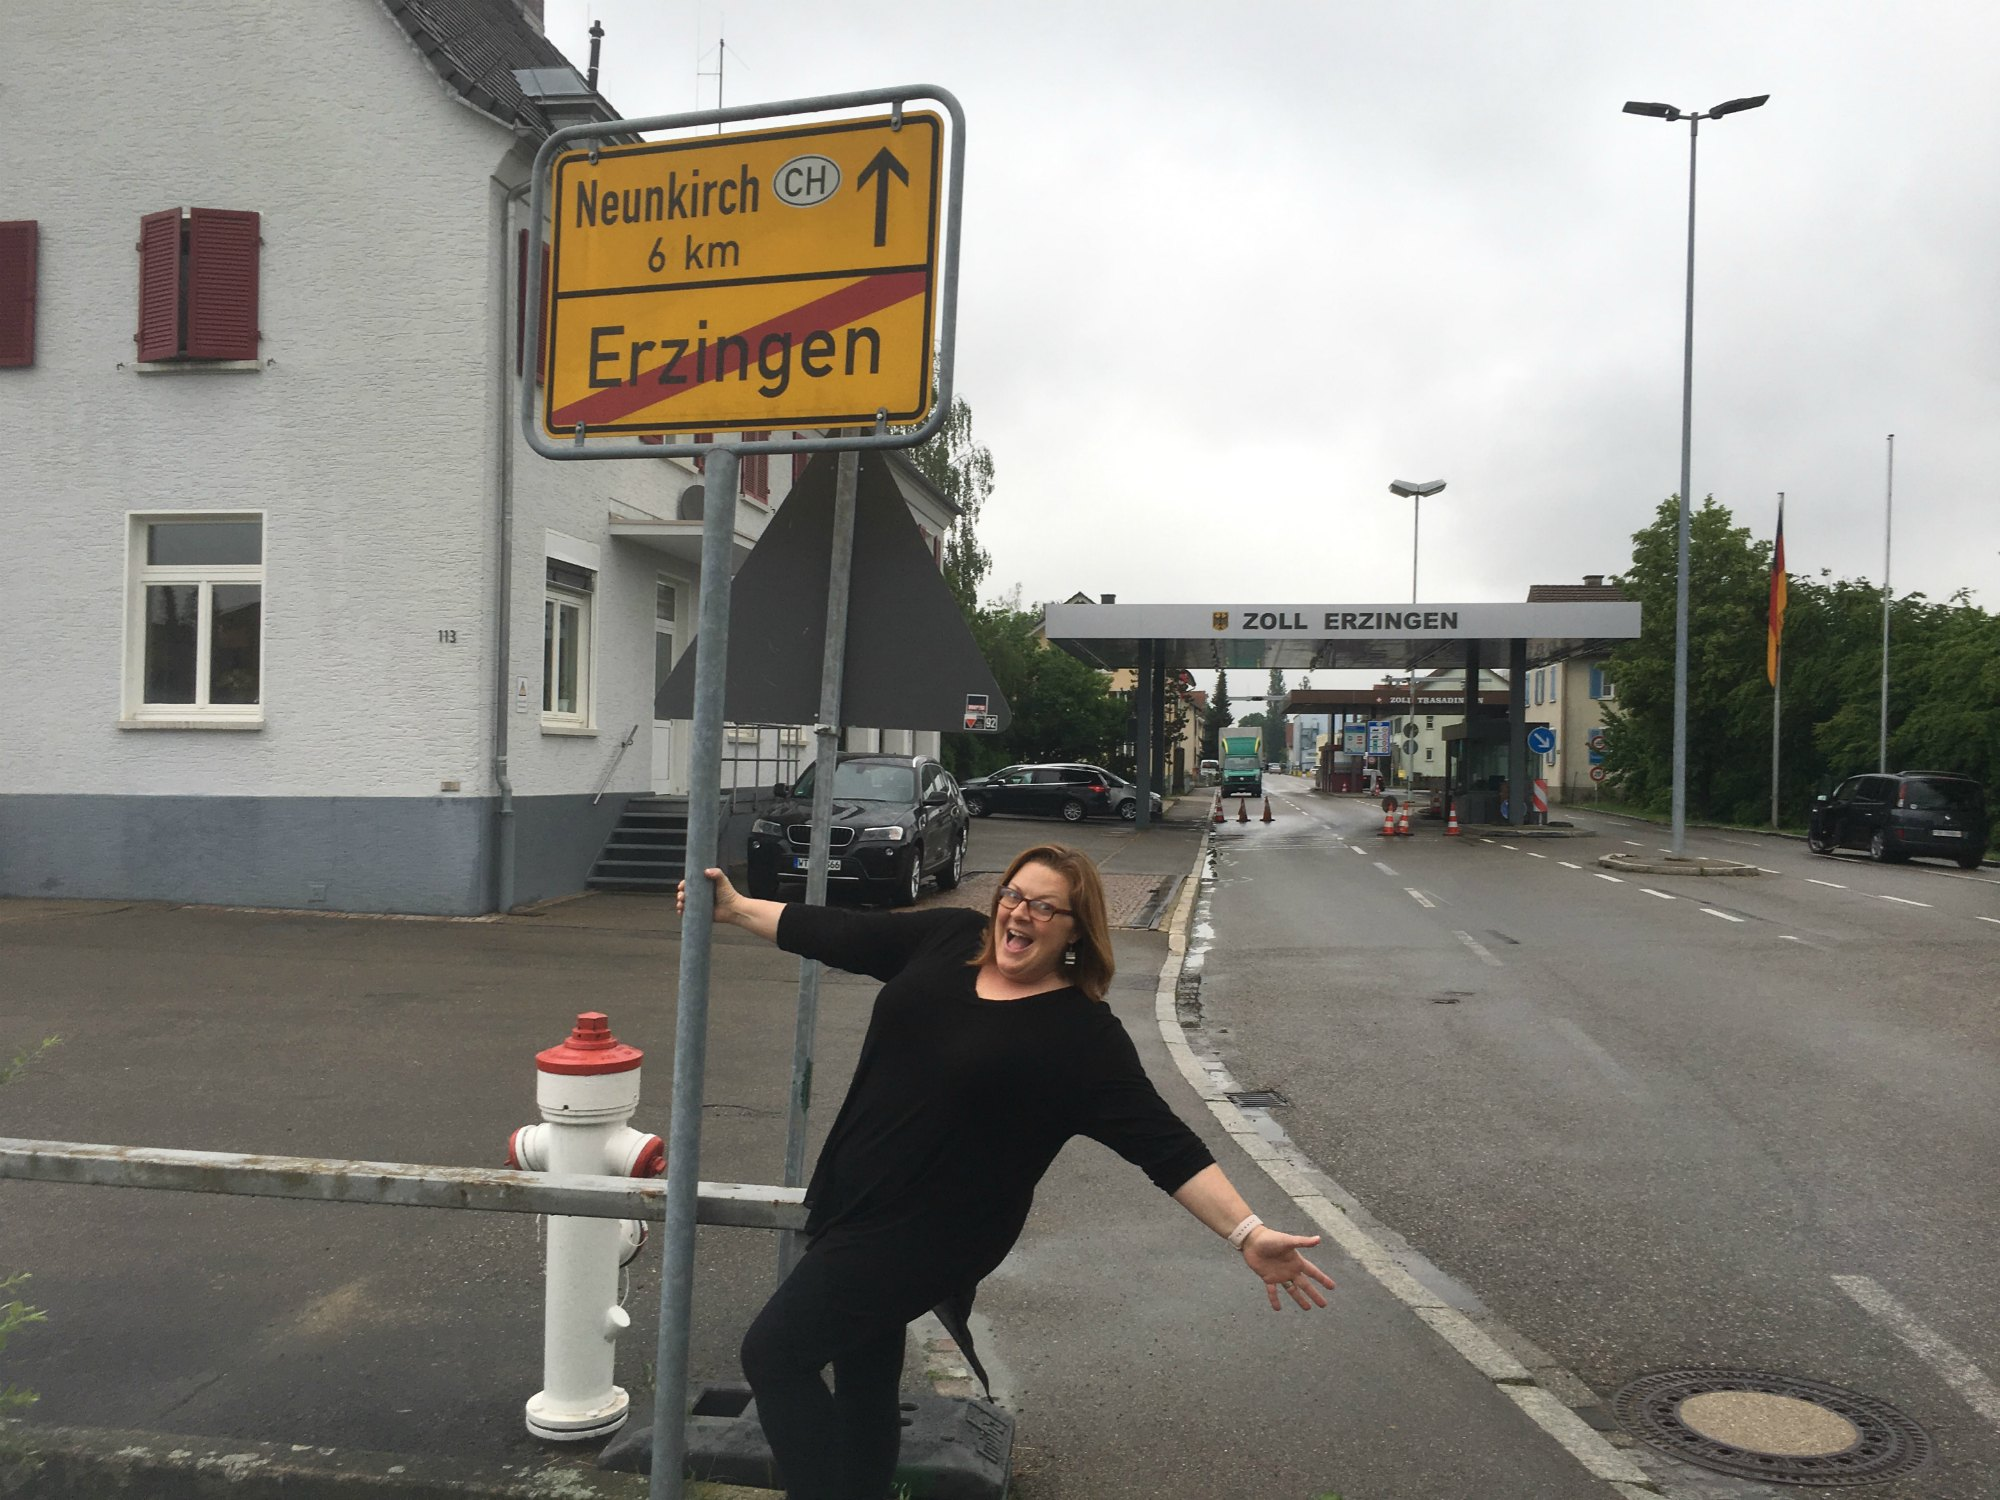 Me in Germany!